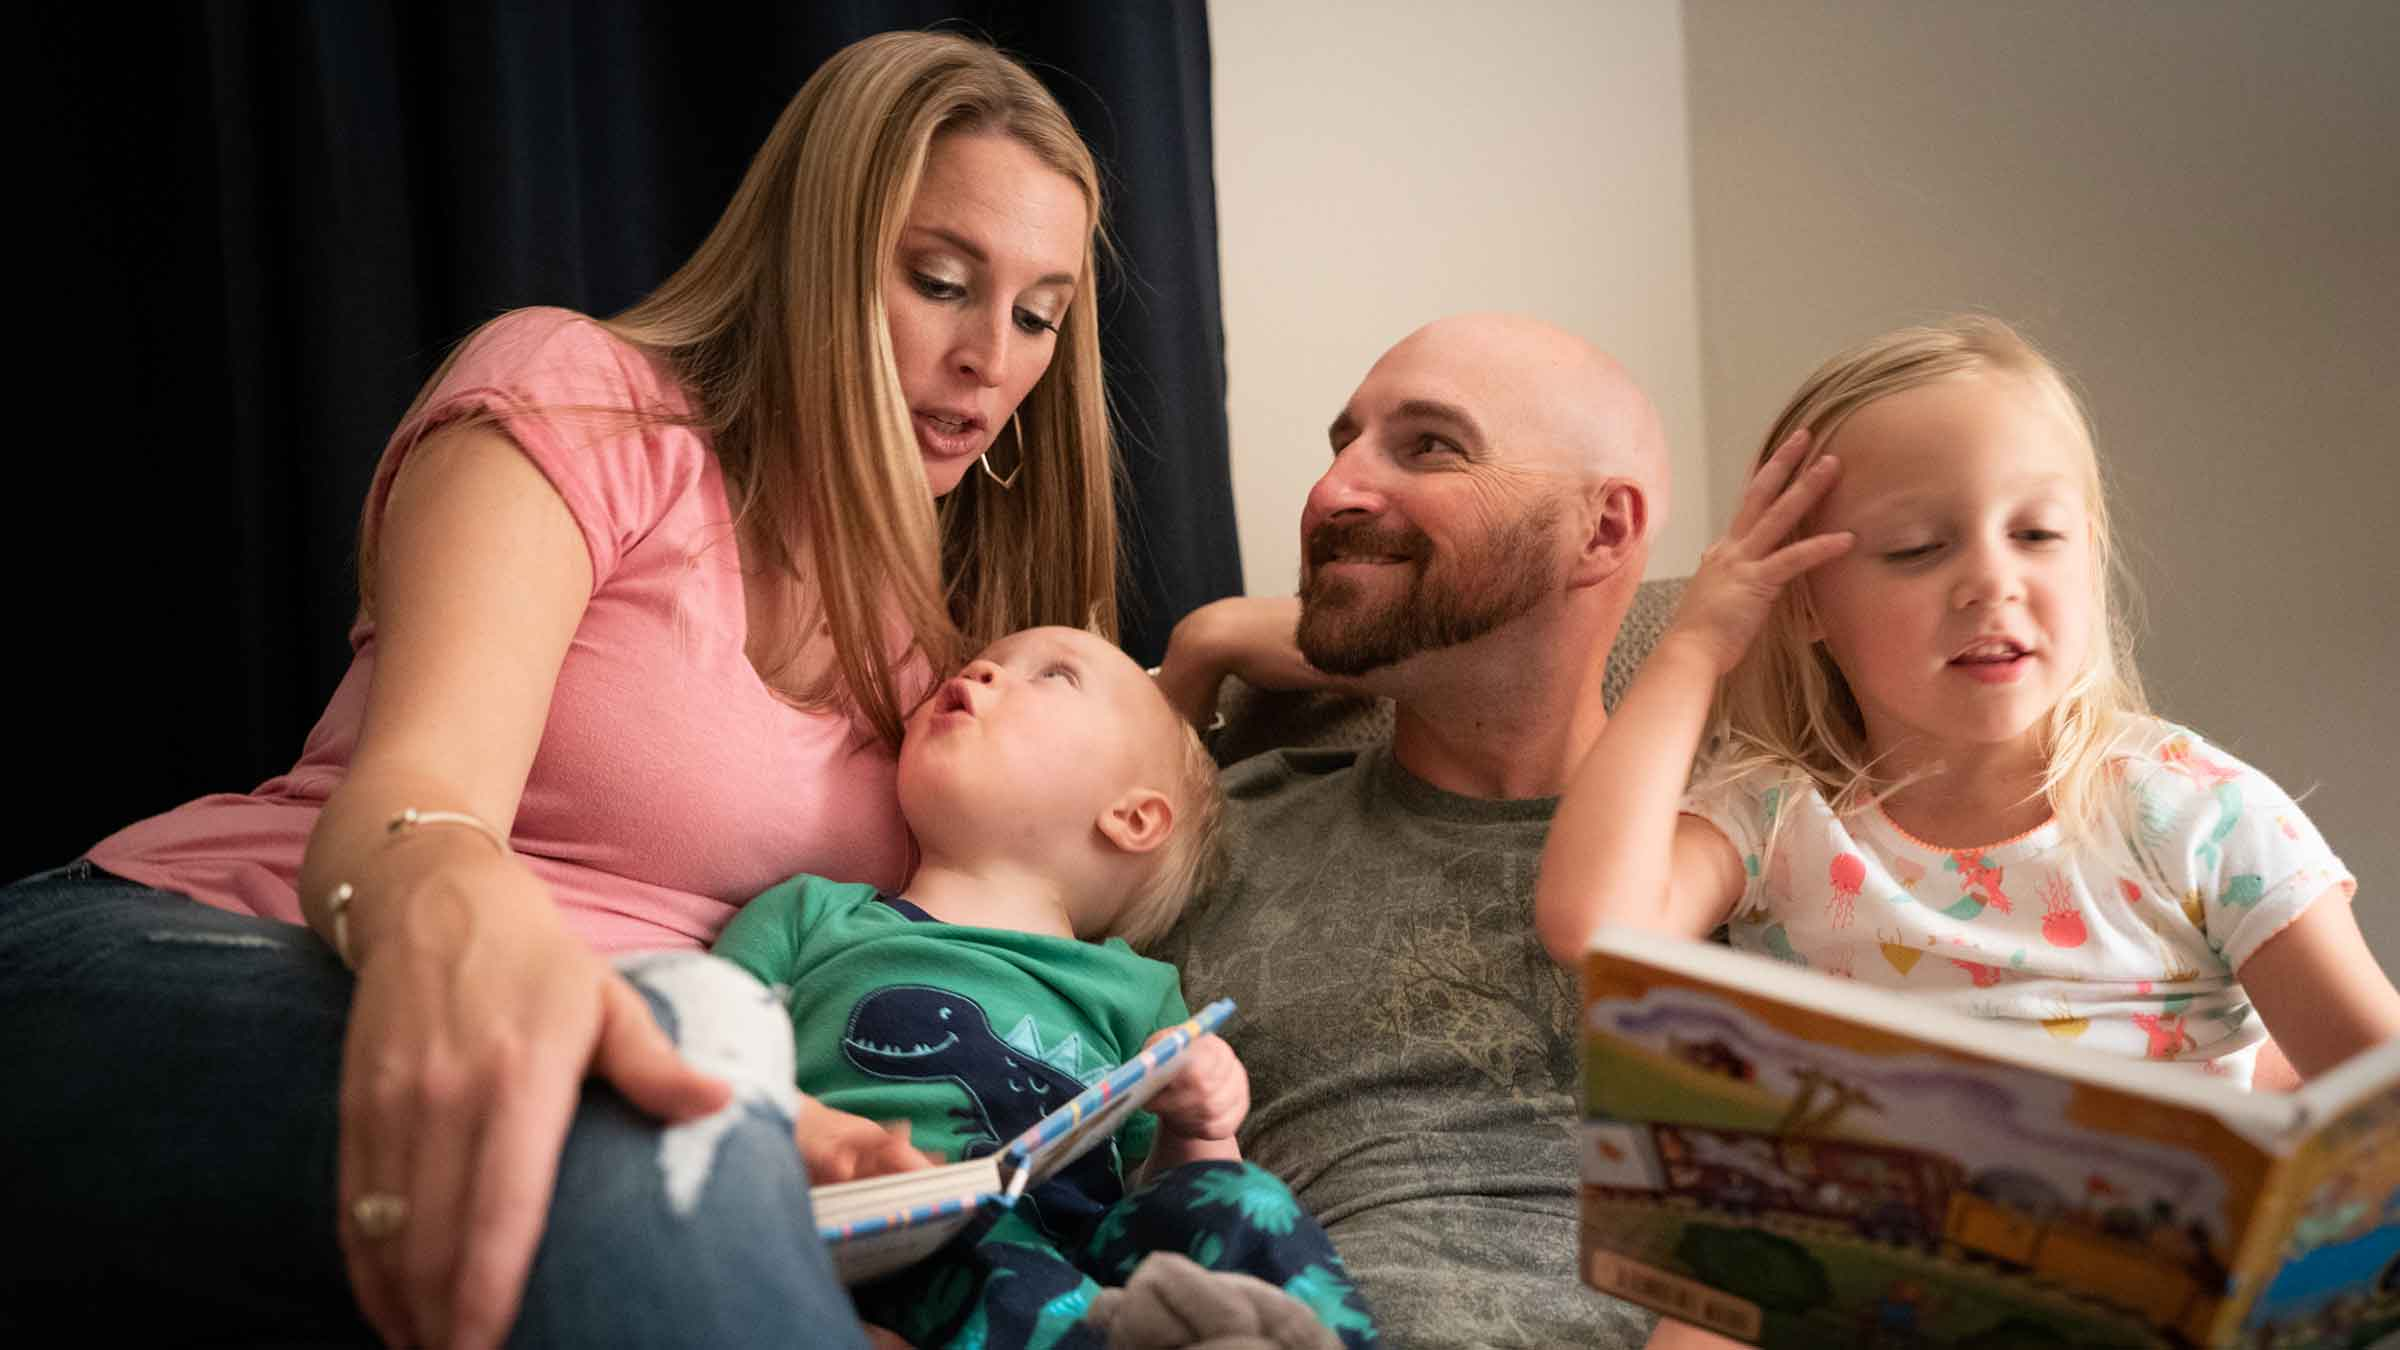 The Hammond family reads bedtime stories.